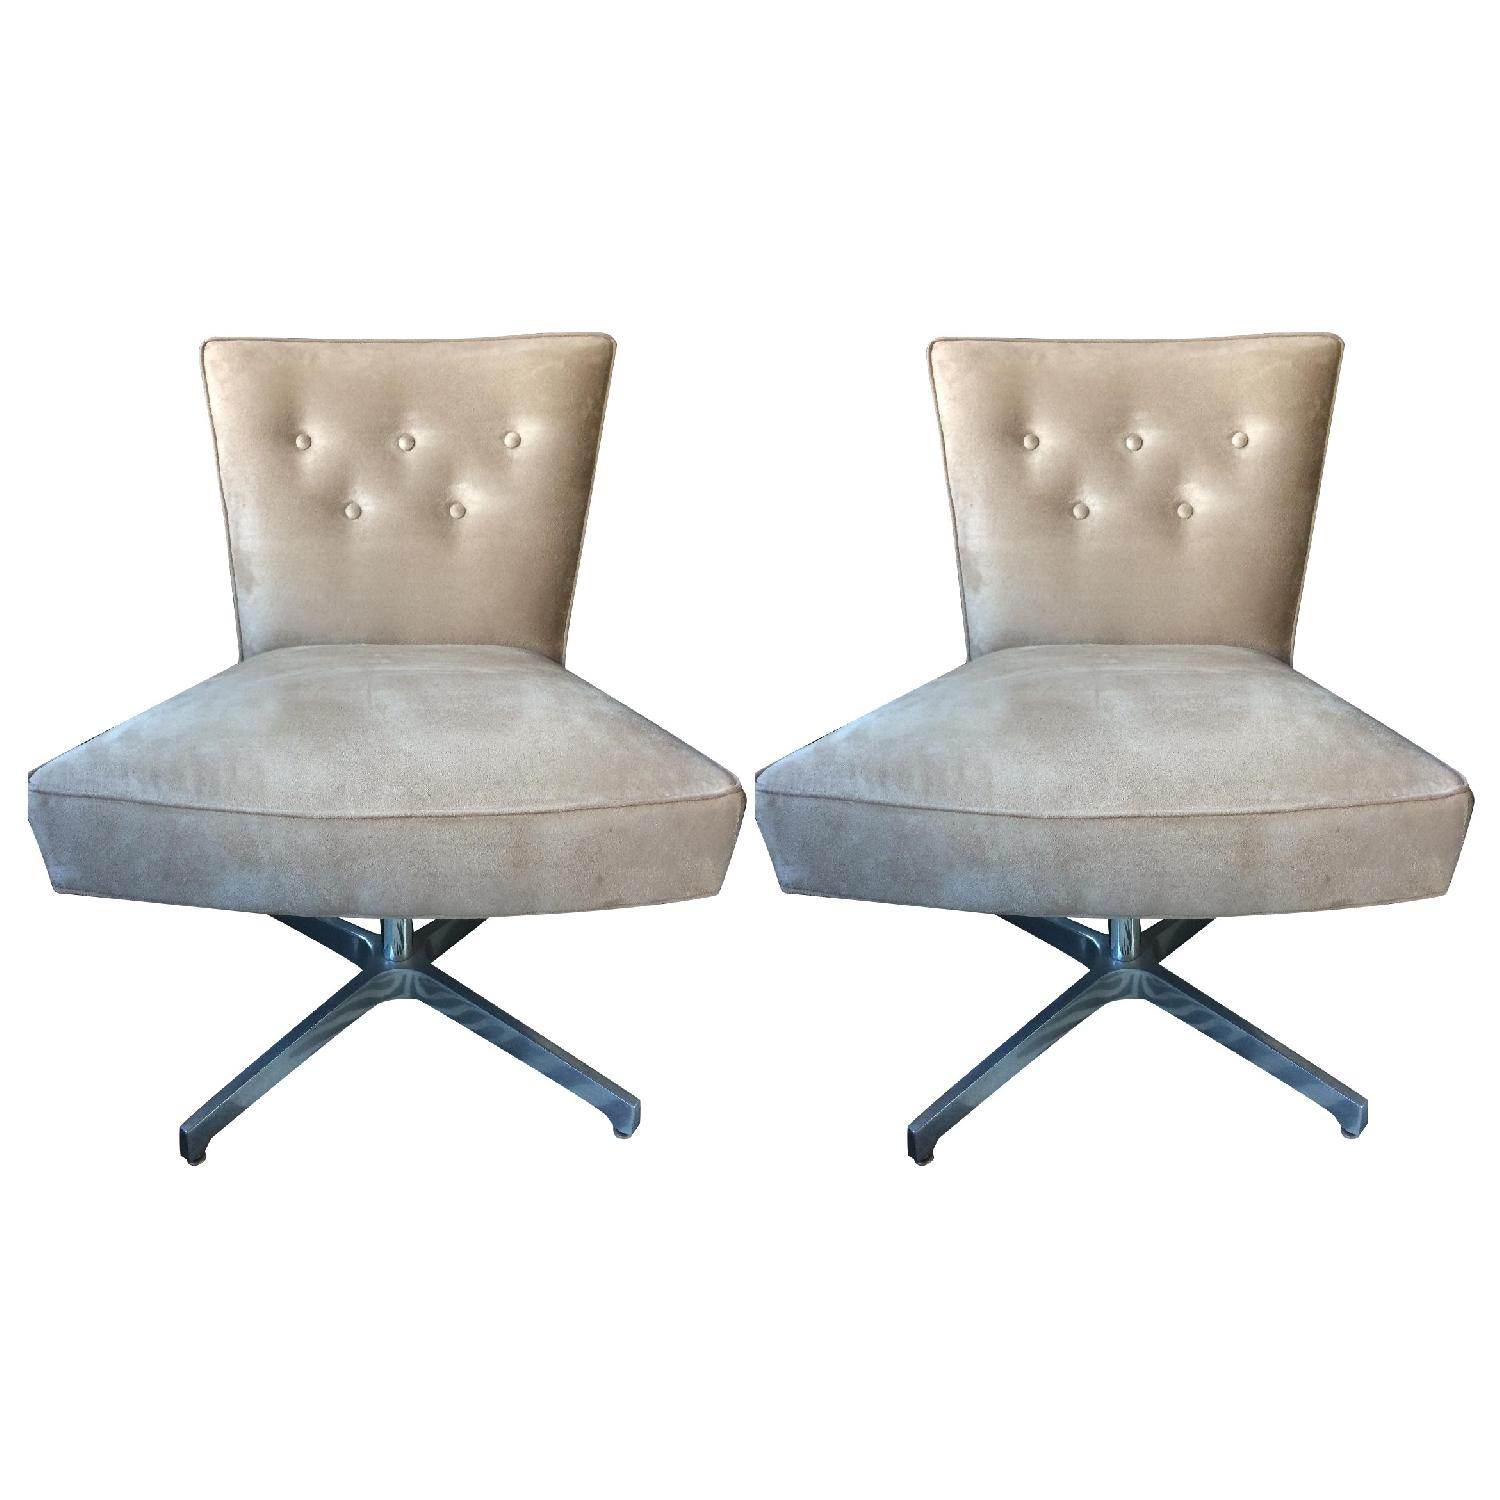 Mitchell Gold + Bob Williams Swivel Chairs - Pair - image-0